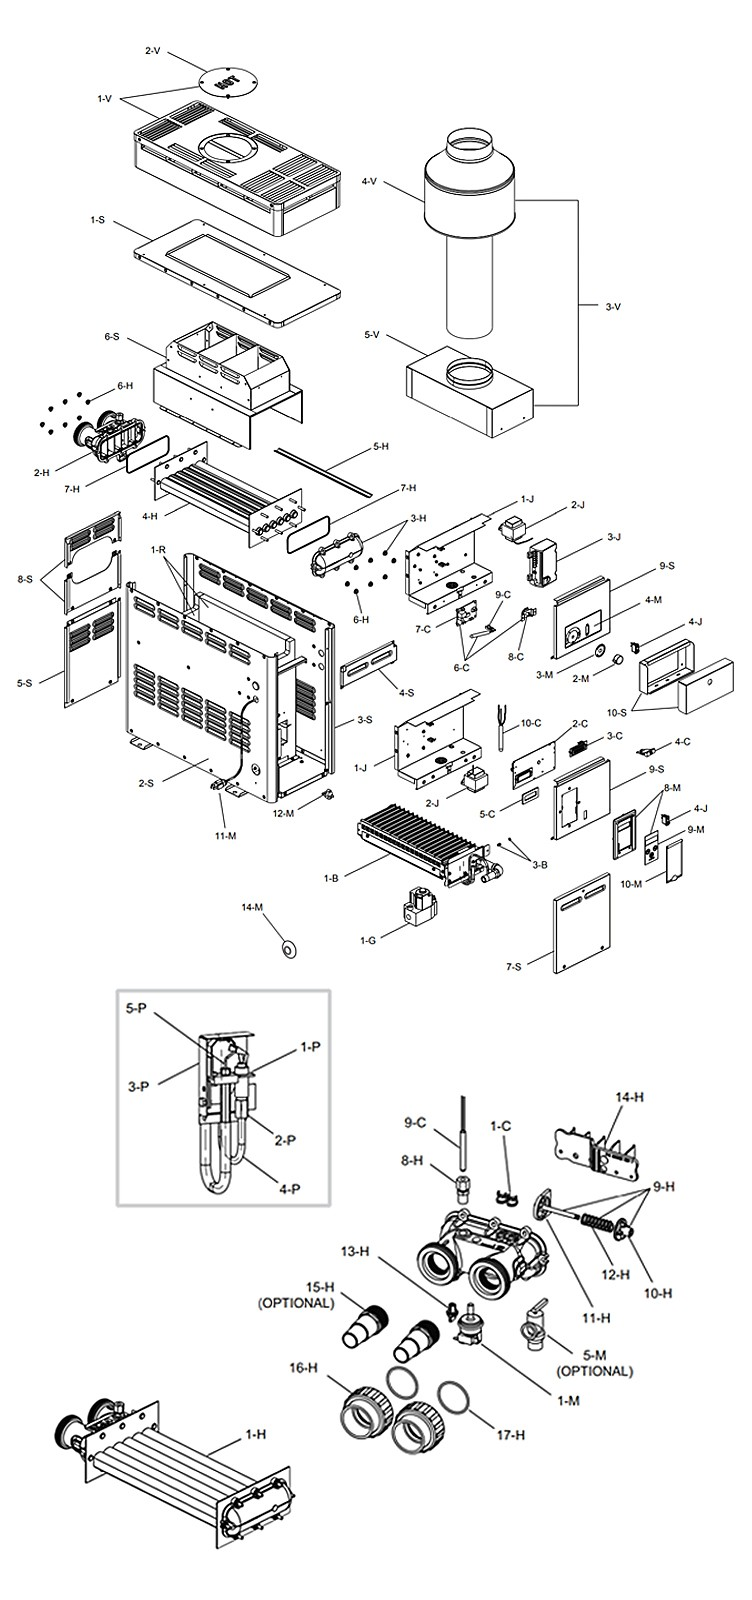 Raypak 156A Above Ground Pool and Spa Heater | Digital Controls Electronic Ignition | Natural Gas 150K BTU | P-M156A-EN-C 014802 P-R156A-EN-C 014784 Parts Schematic